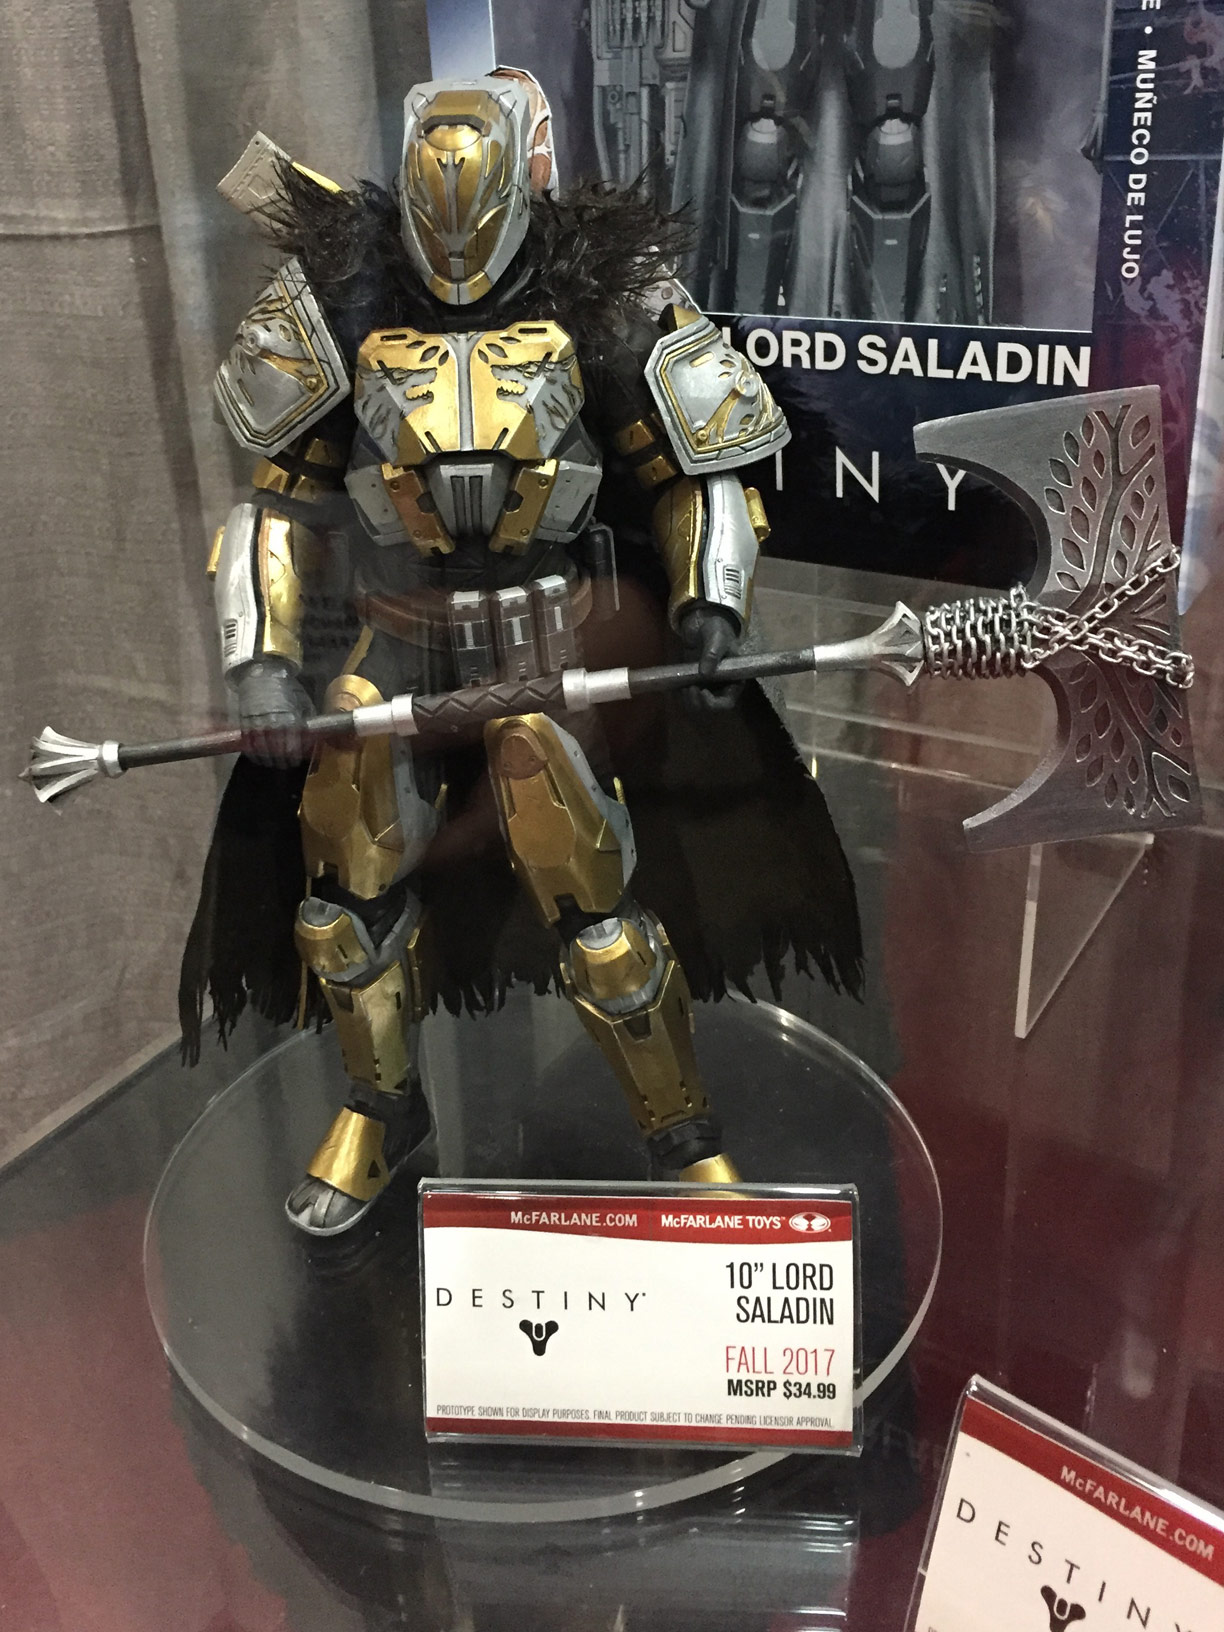 Destiny 2017 Lord Saladin Figure at Toy Fair 2017